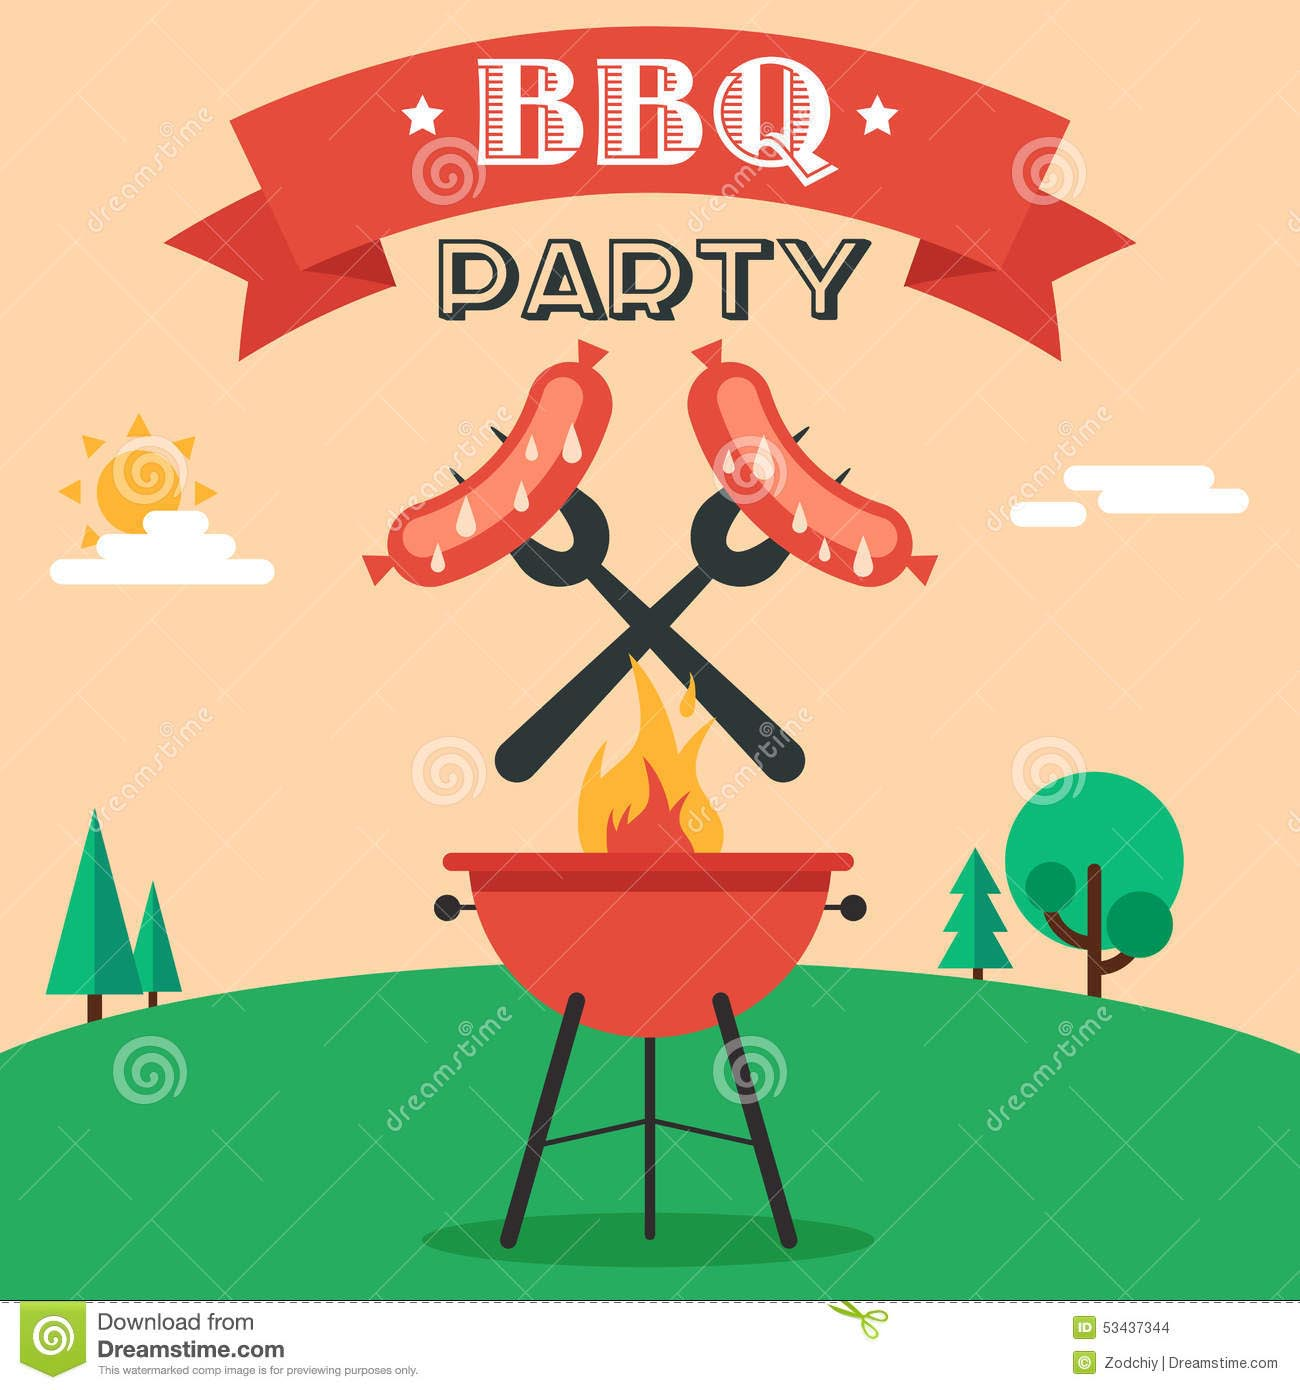 bbq party invitation templates free fire pit design ideas